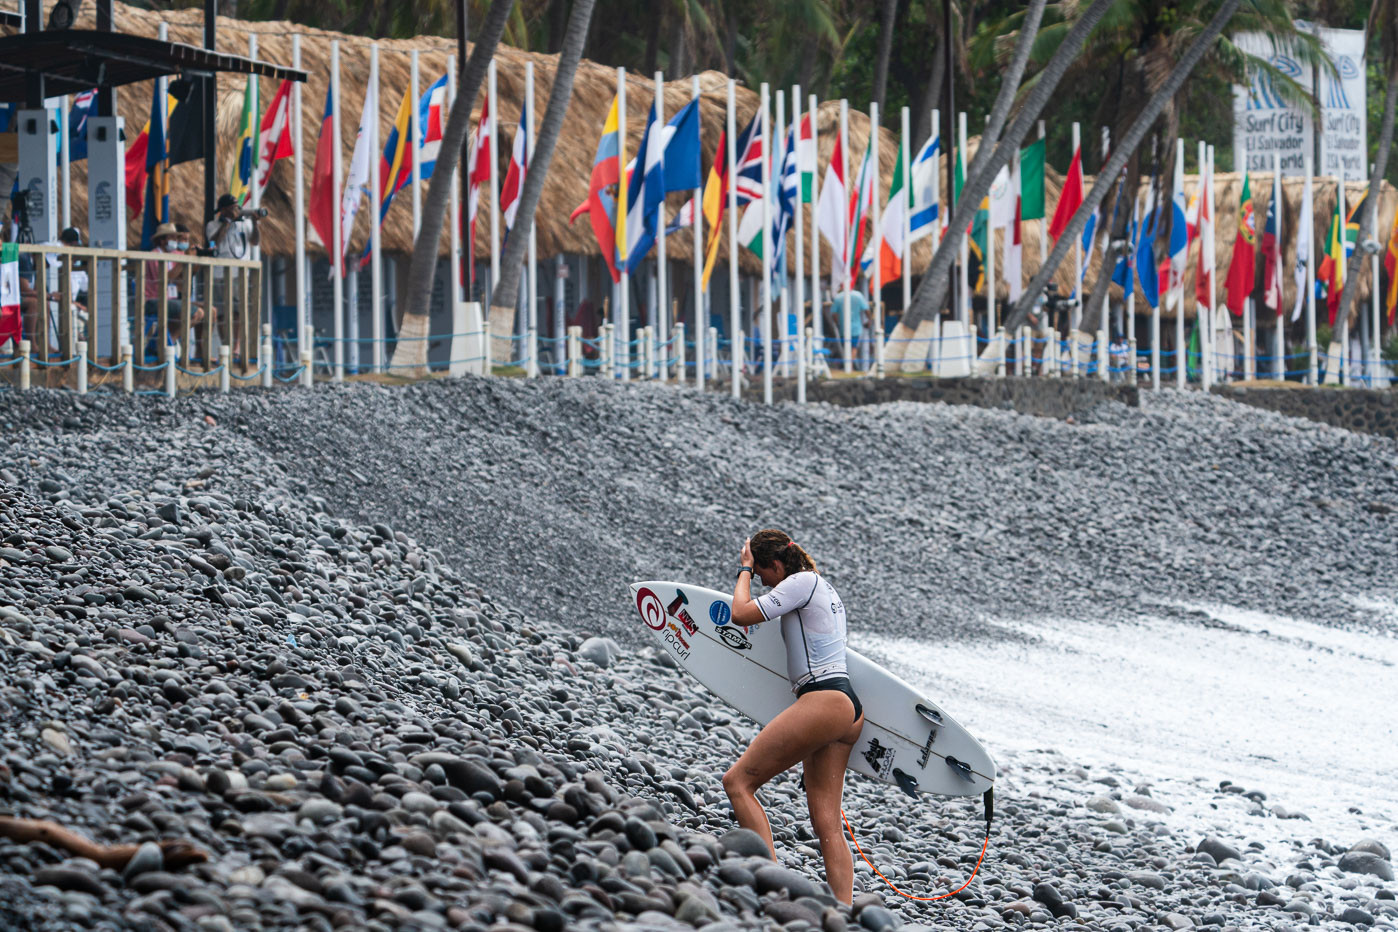 Main event and repechage action took place on the fifth day of competition at Surf City in El Salvador ©ISA/Sean Evans